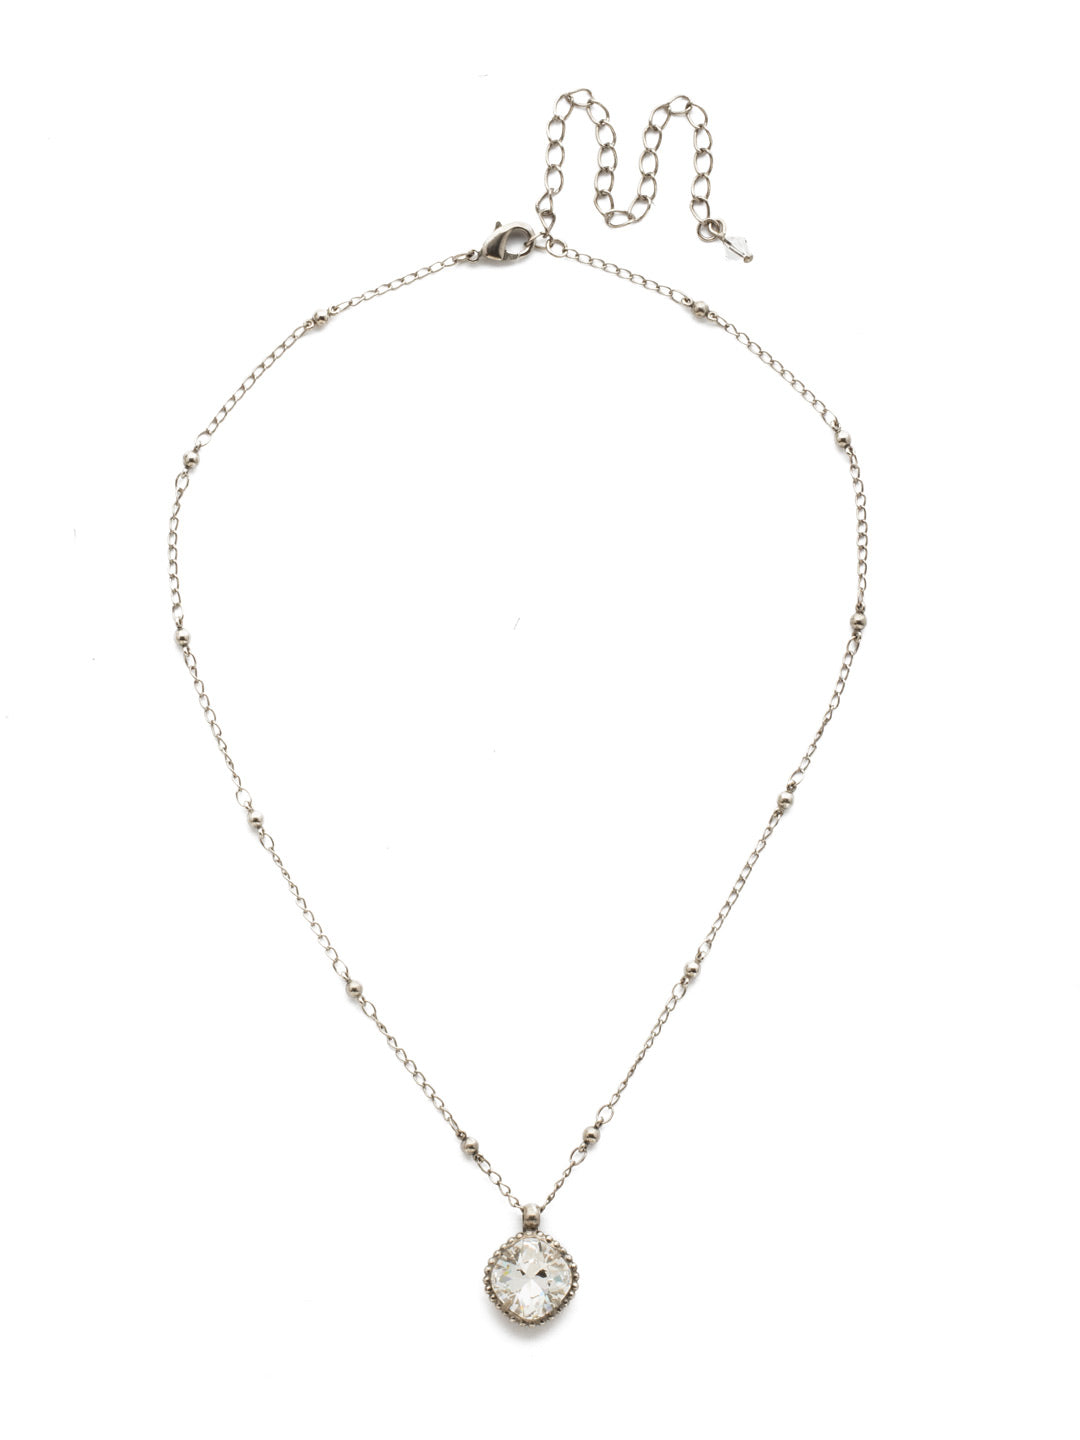 Cushion-Cut Solitaire Necklace - Sorrelli Essentials - NDS50ASCRY